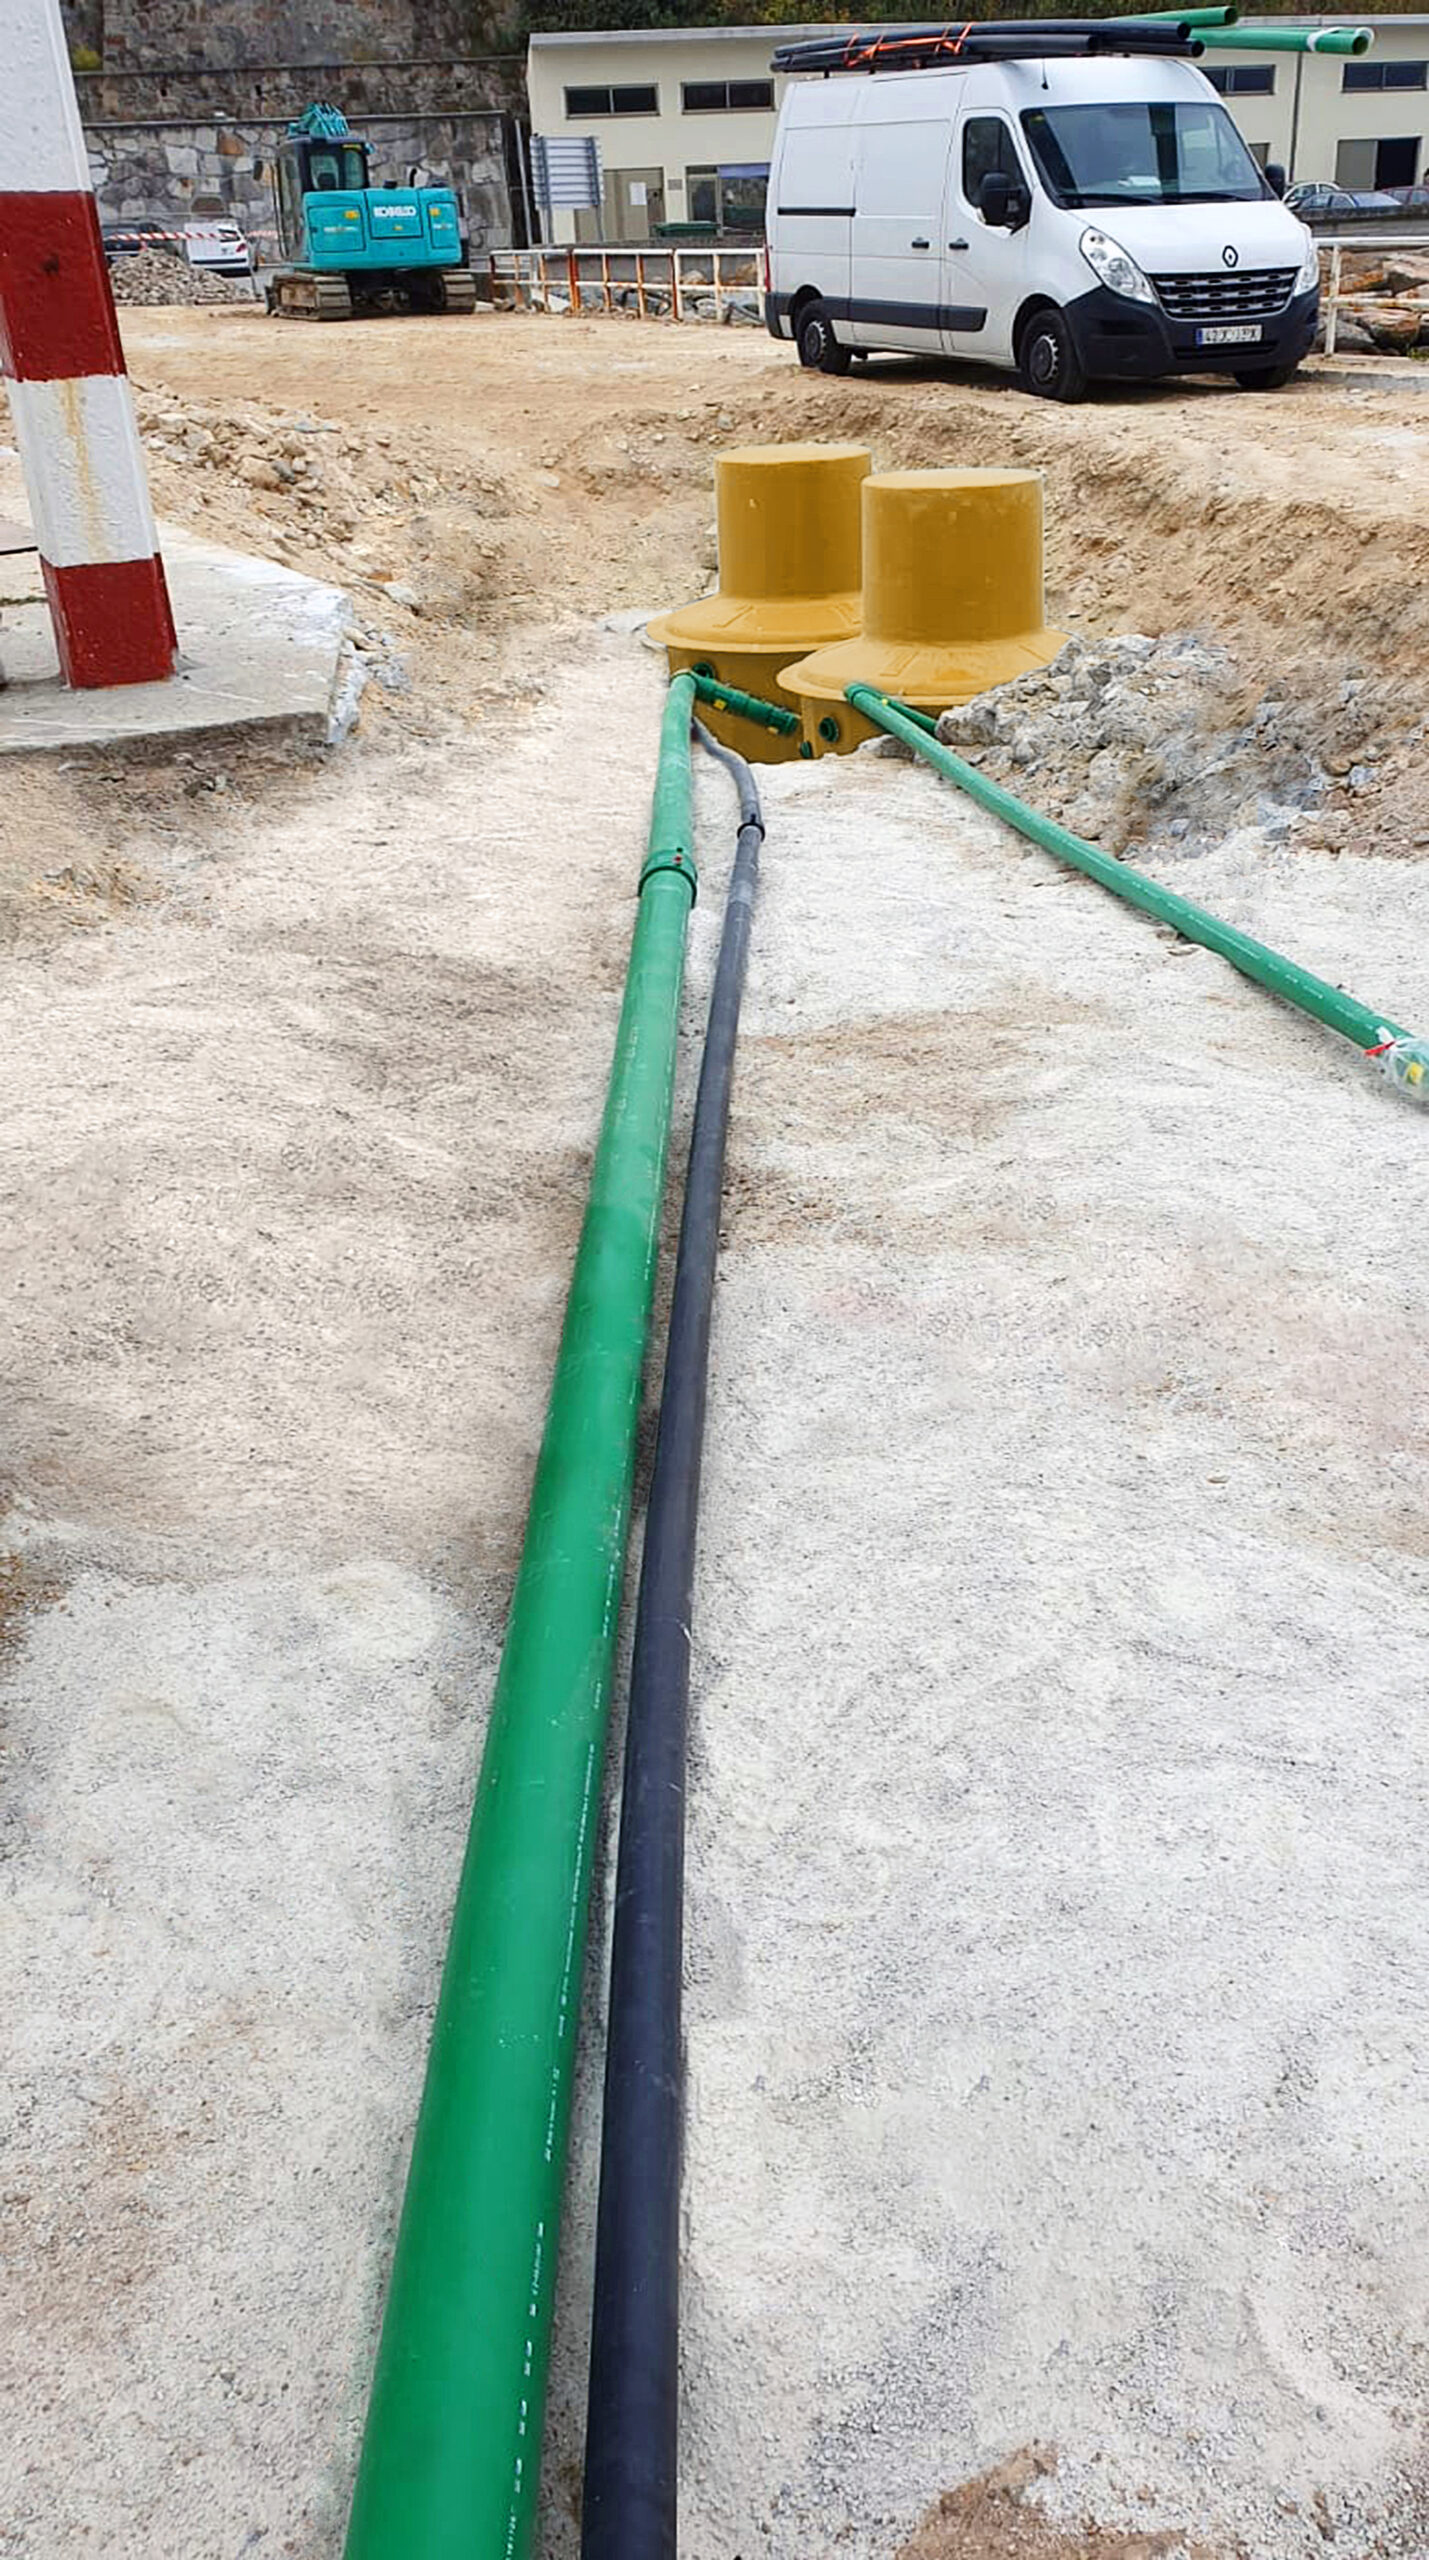 Conductive pipes avoid any static electricity build up from fuel flow